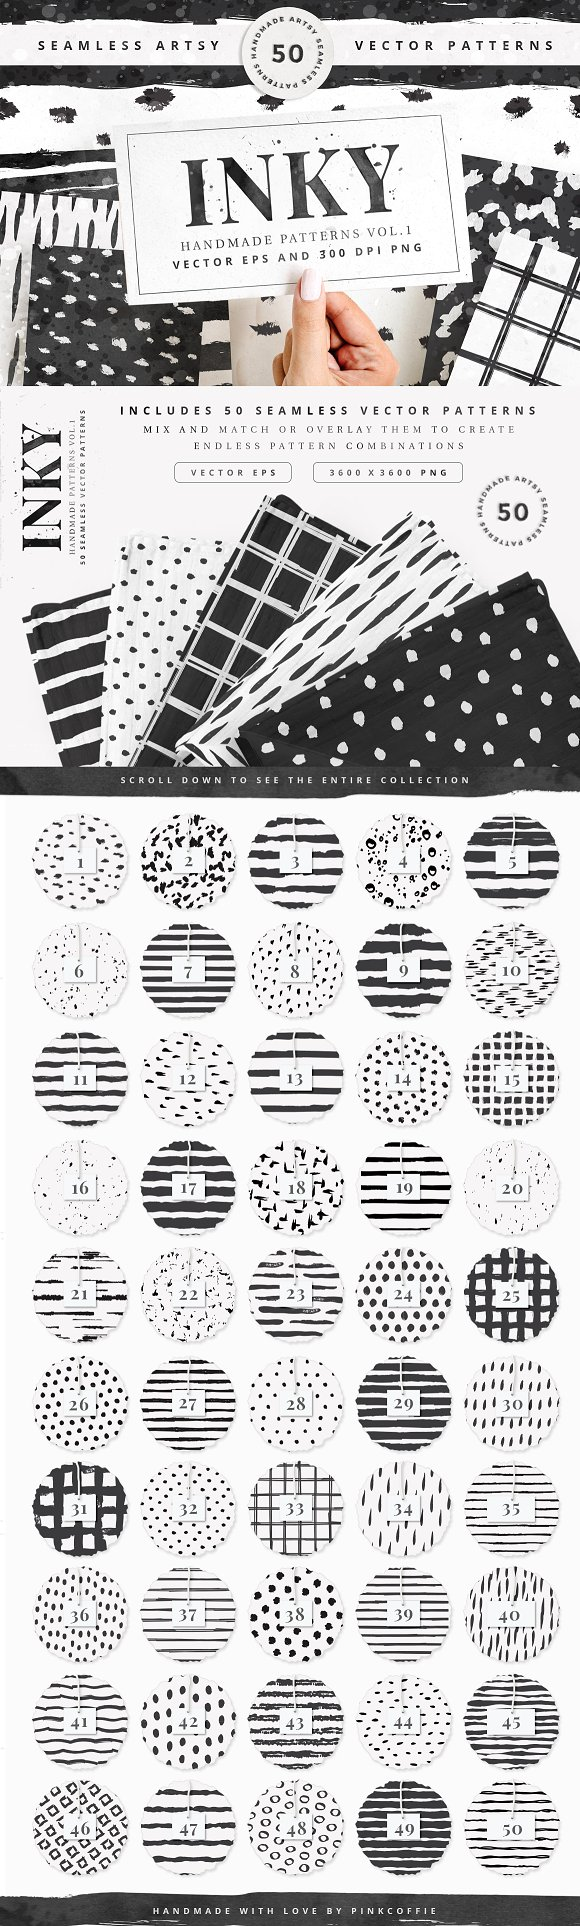 50 Seamless Vector Patterns Vol.1